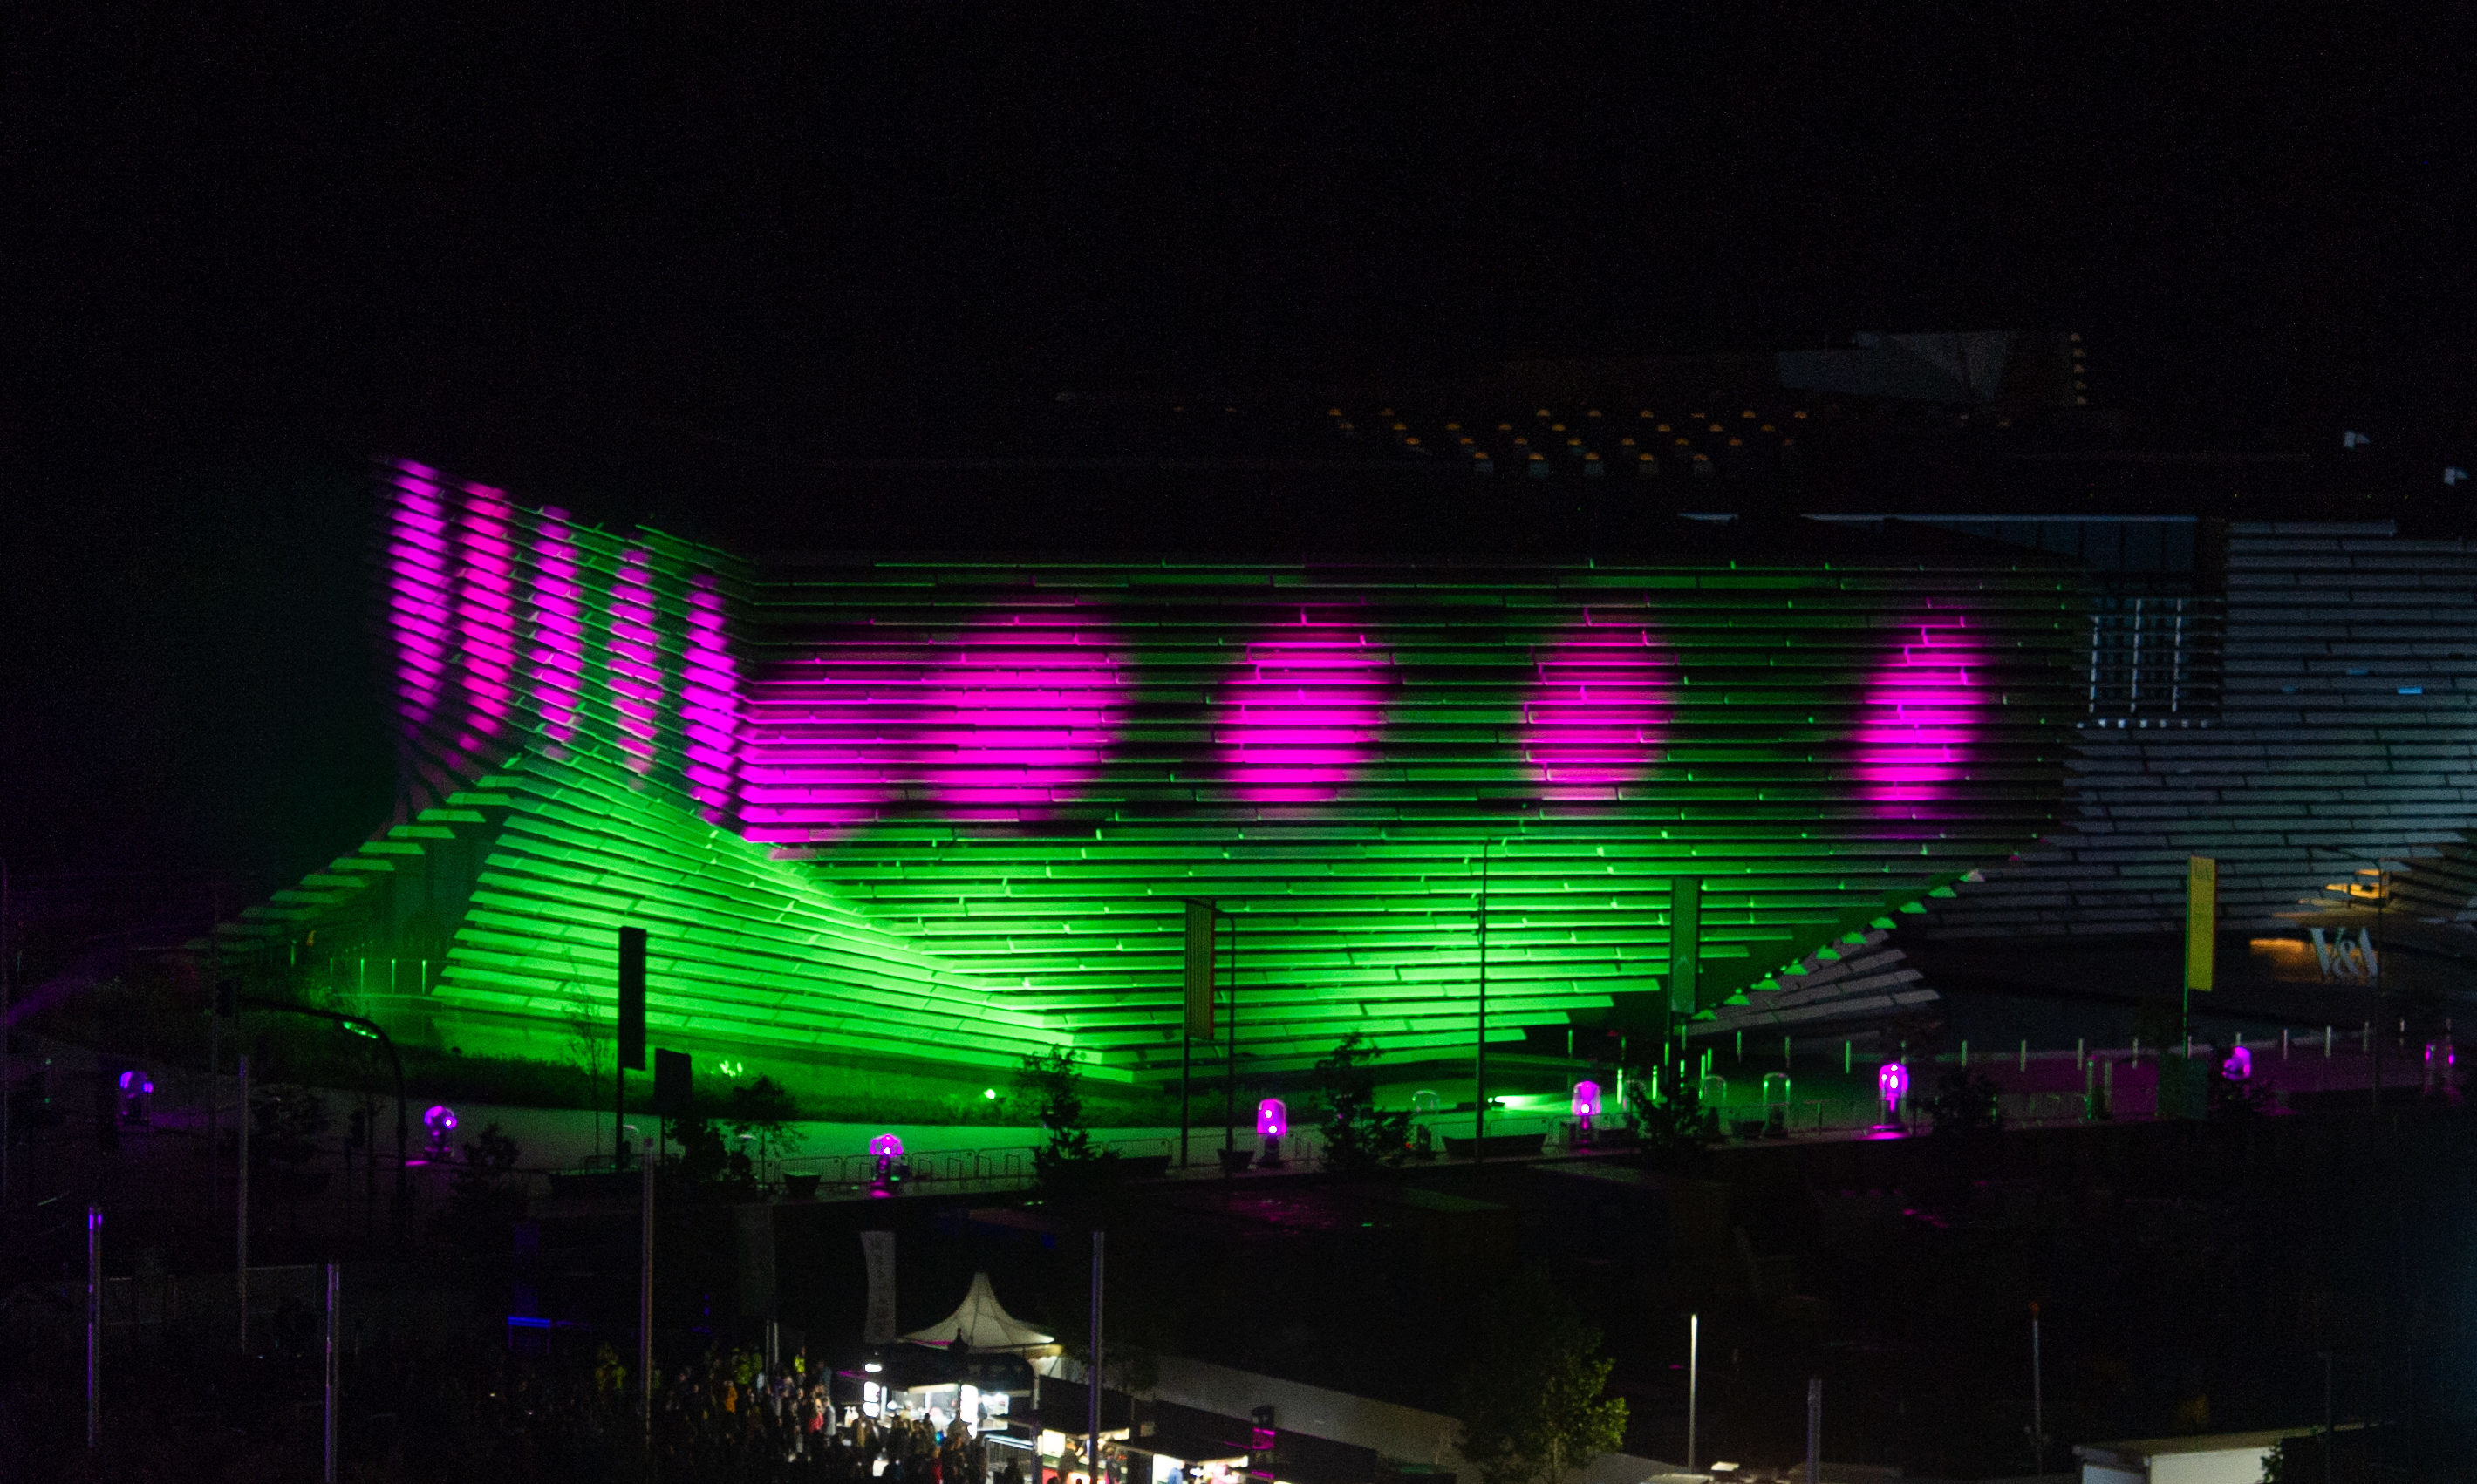 The 3D Festival light show celebrating the opening of the V&A.